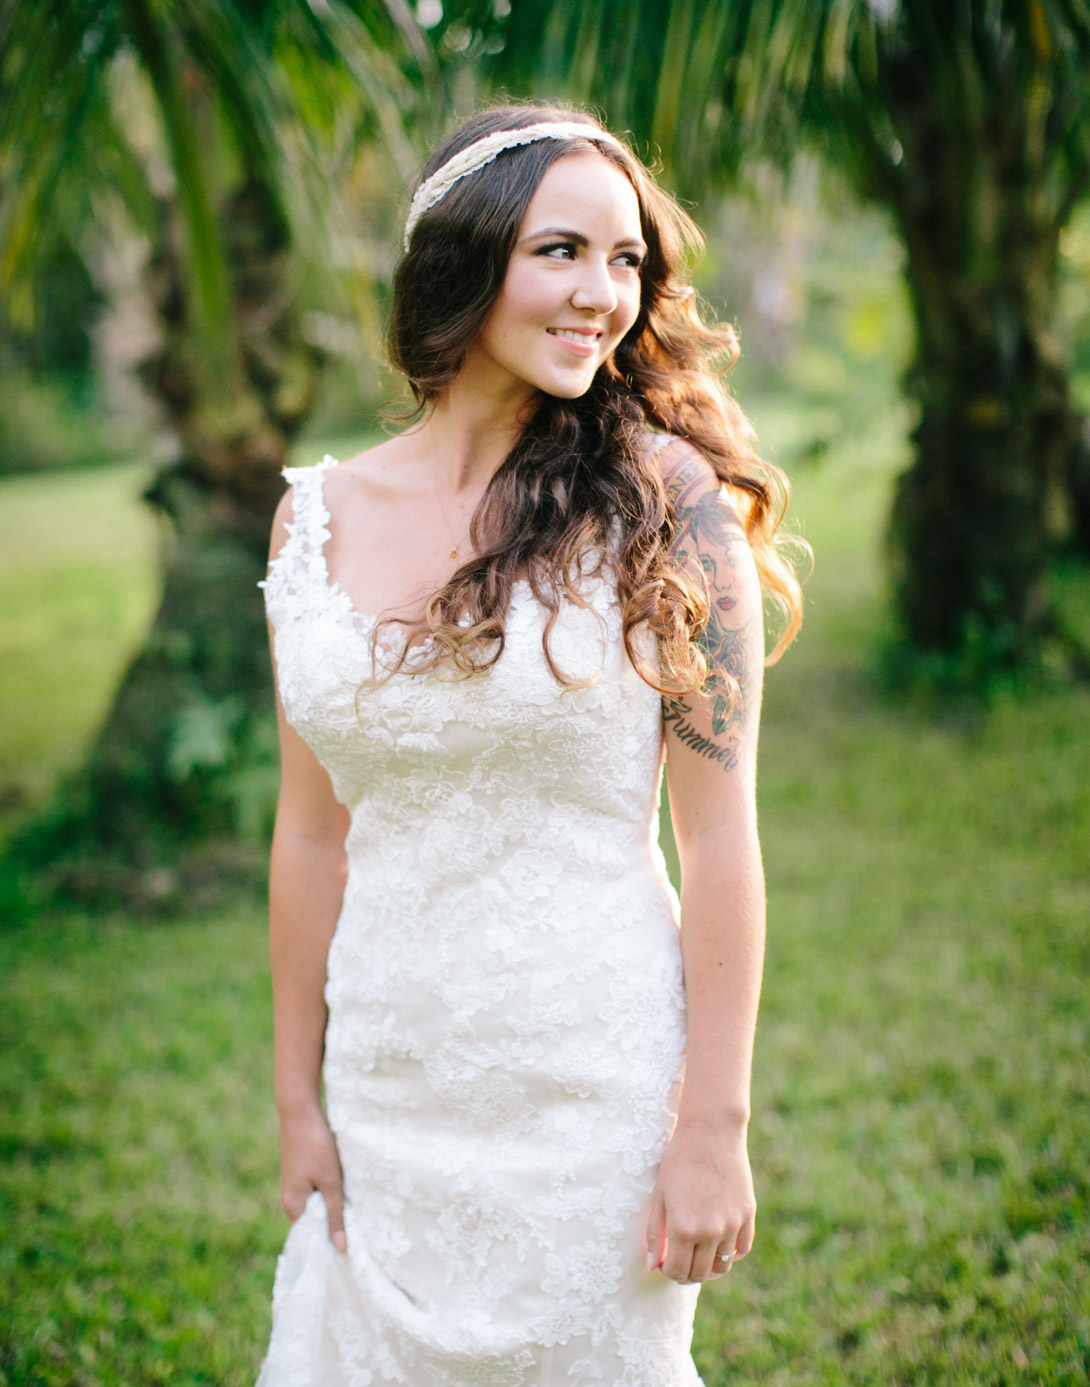 pahoa-wedding-big-island-hawaii-4